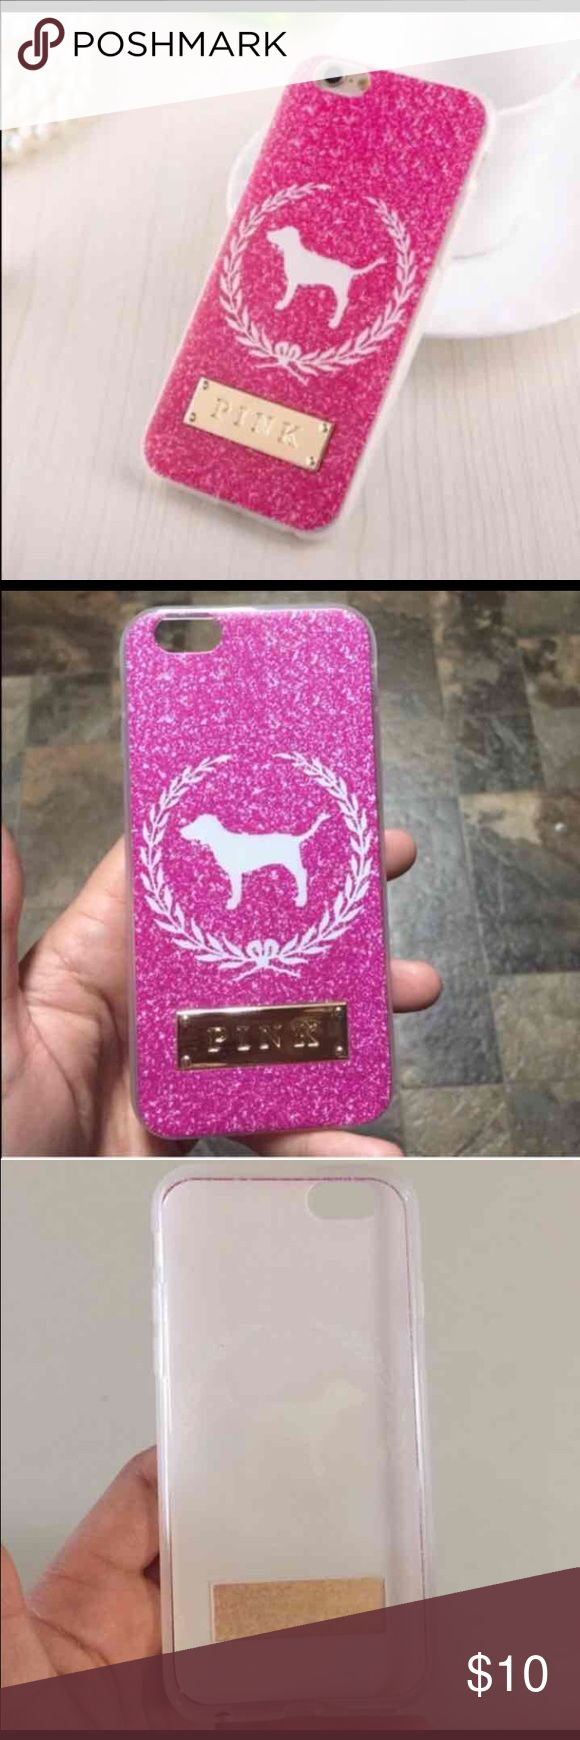 Pink case iPhone 6/6S Cute VS pink soft case for iPhone 6/6S.                      New PINK Victoria's Secret Accessories Phone Cases